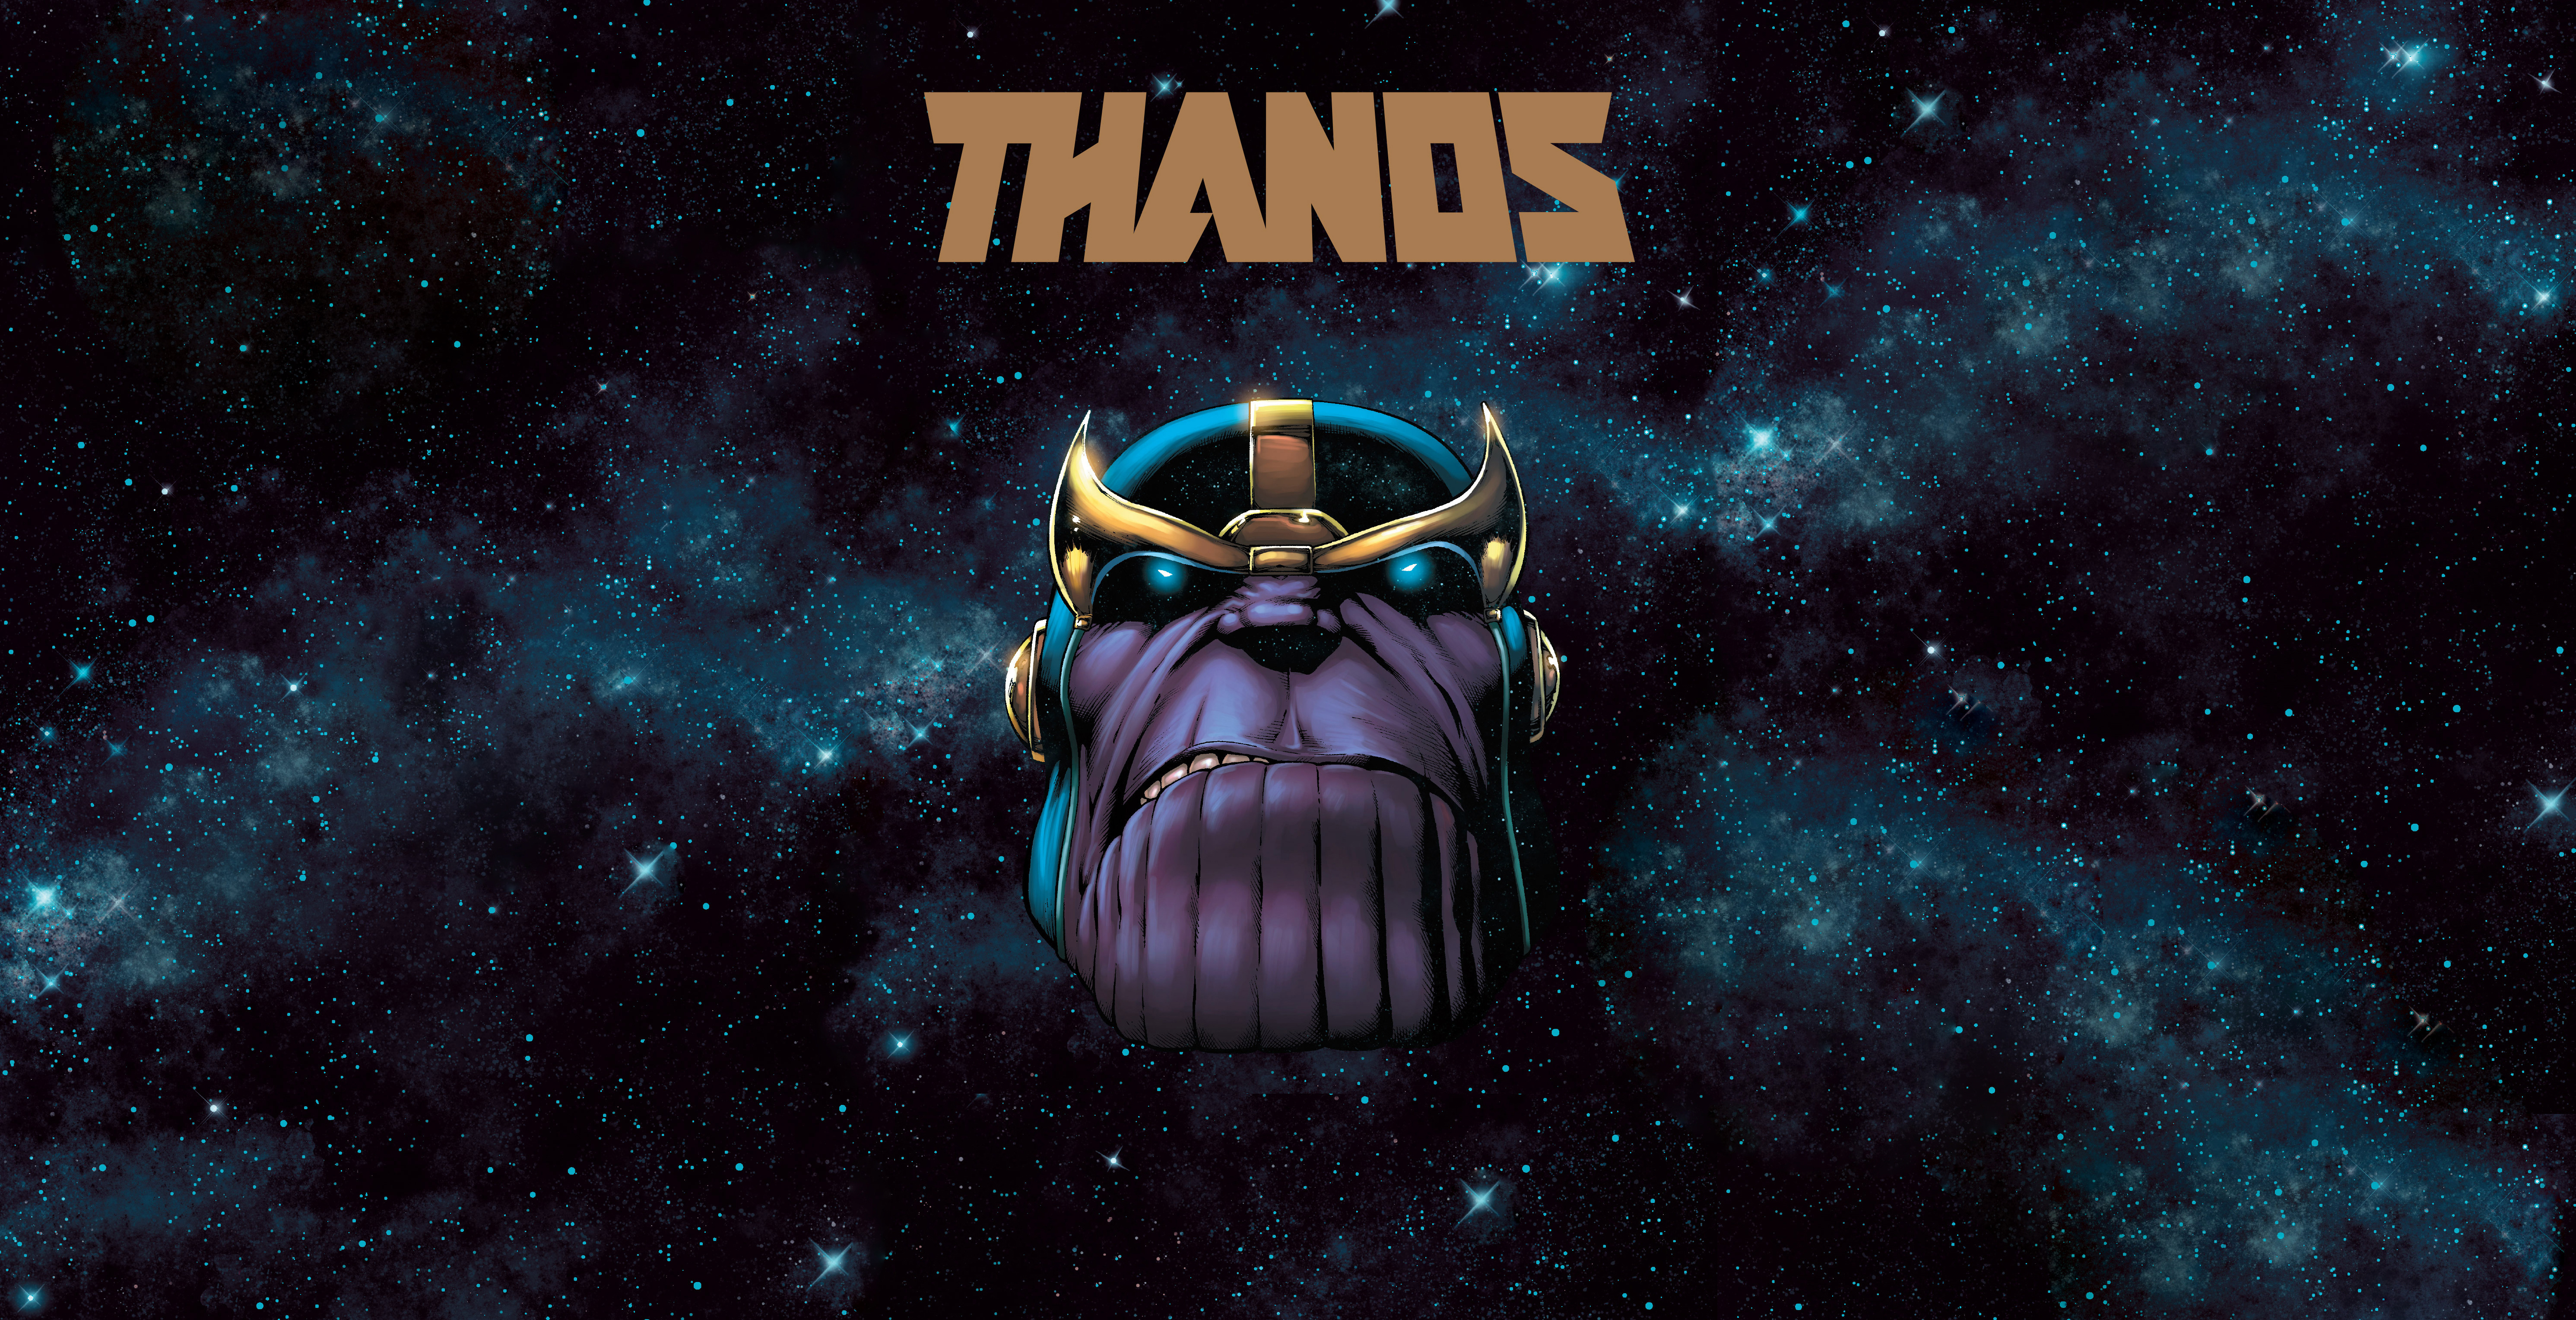 Thanos Hd Wallpaper: Thanos 5k, HD Superheroes, 4k Wallpapers, Images